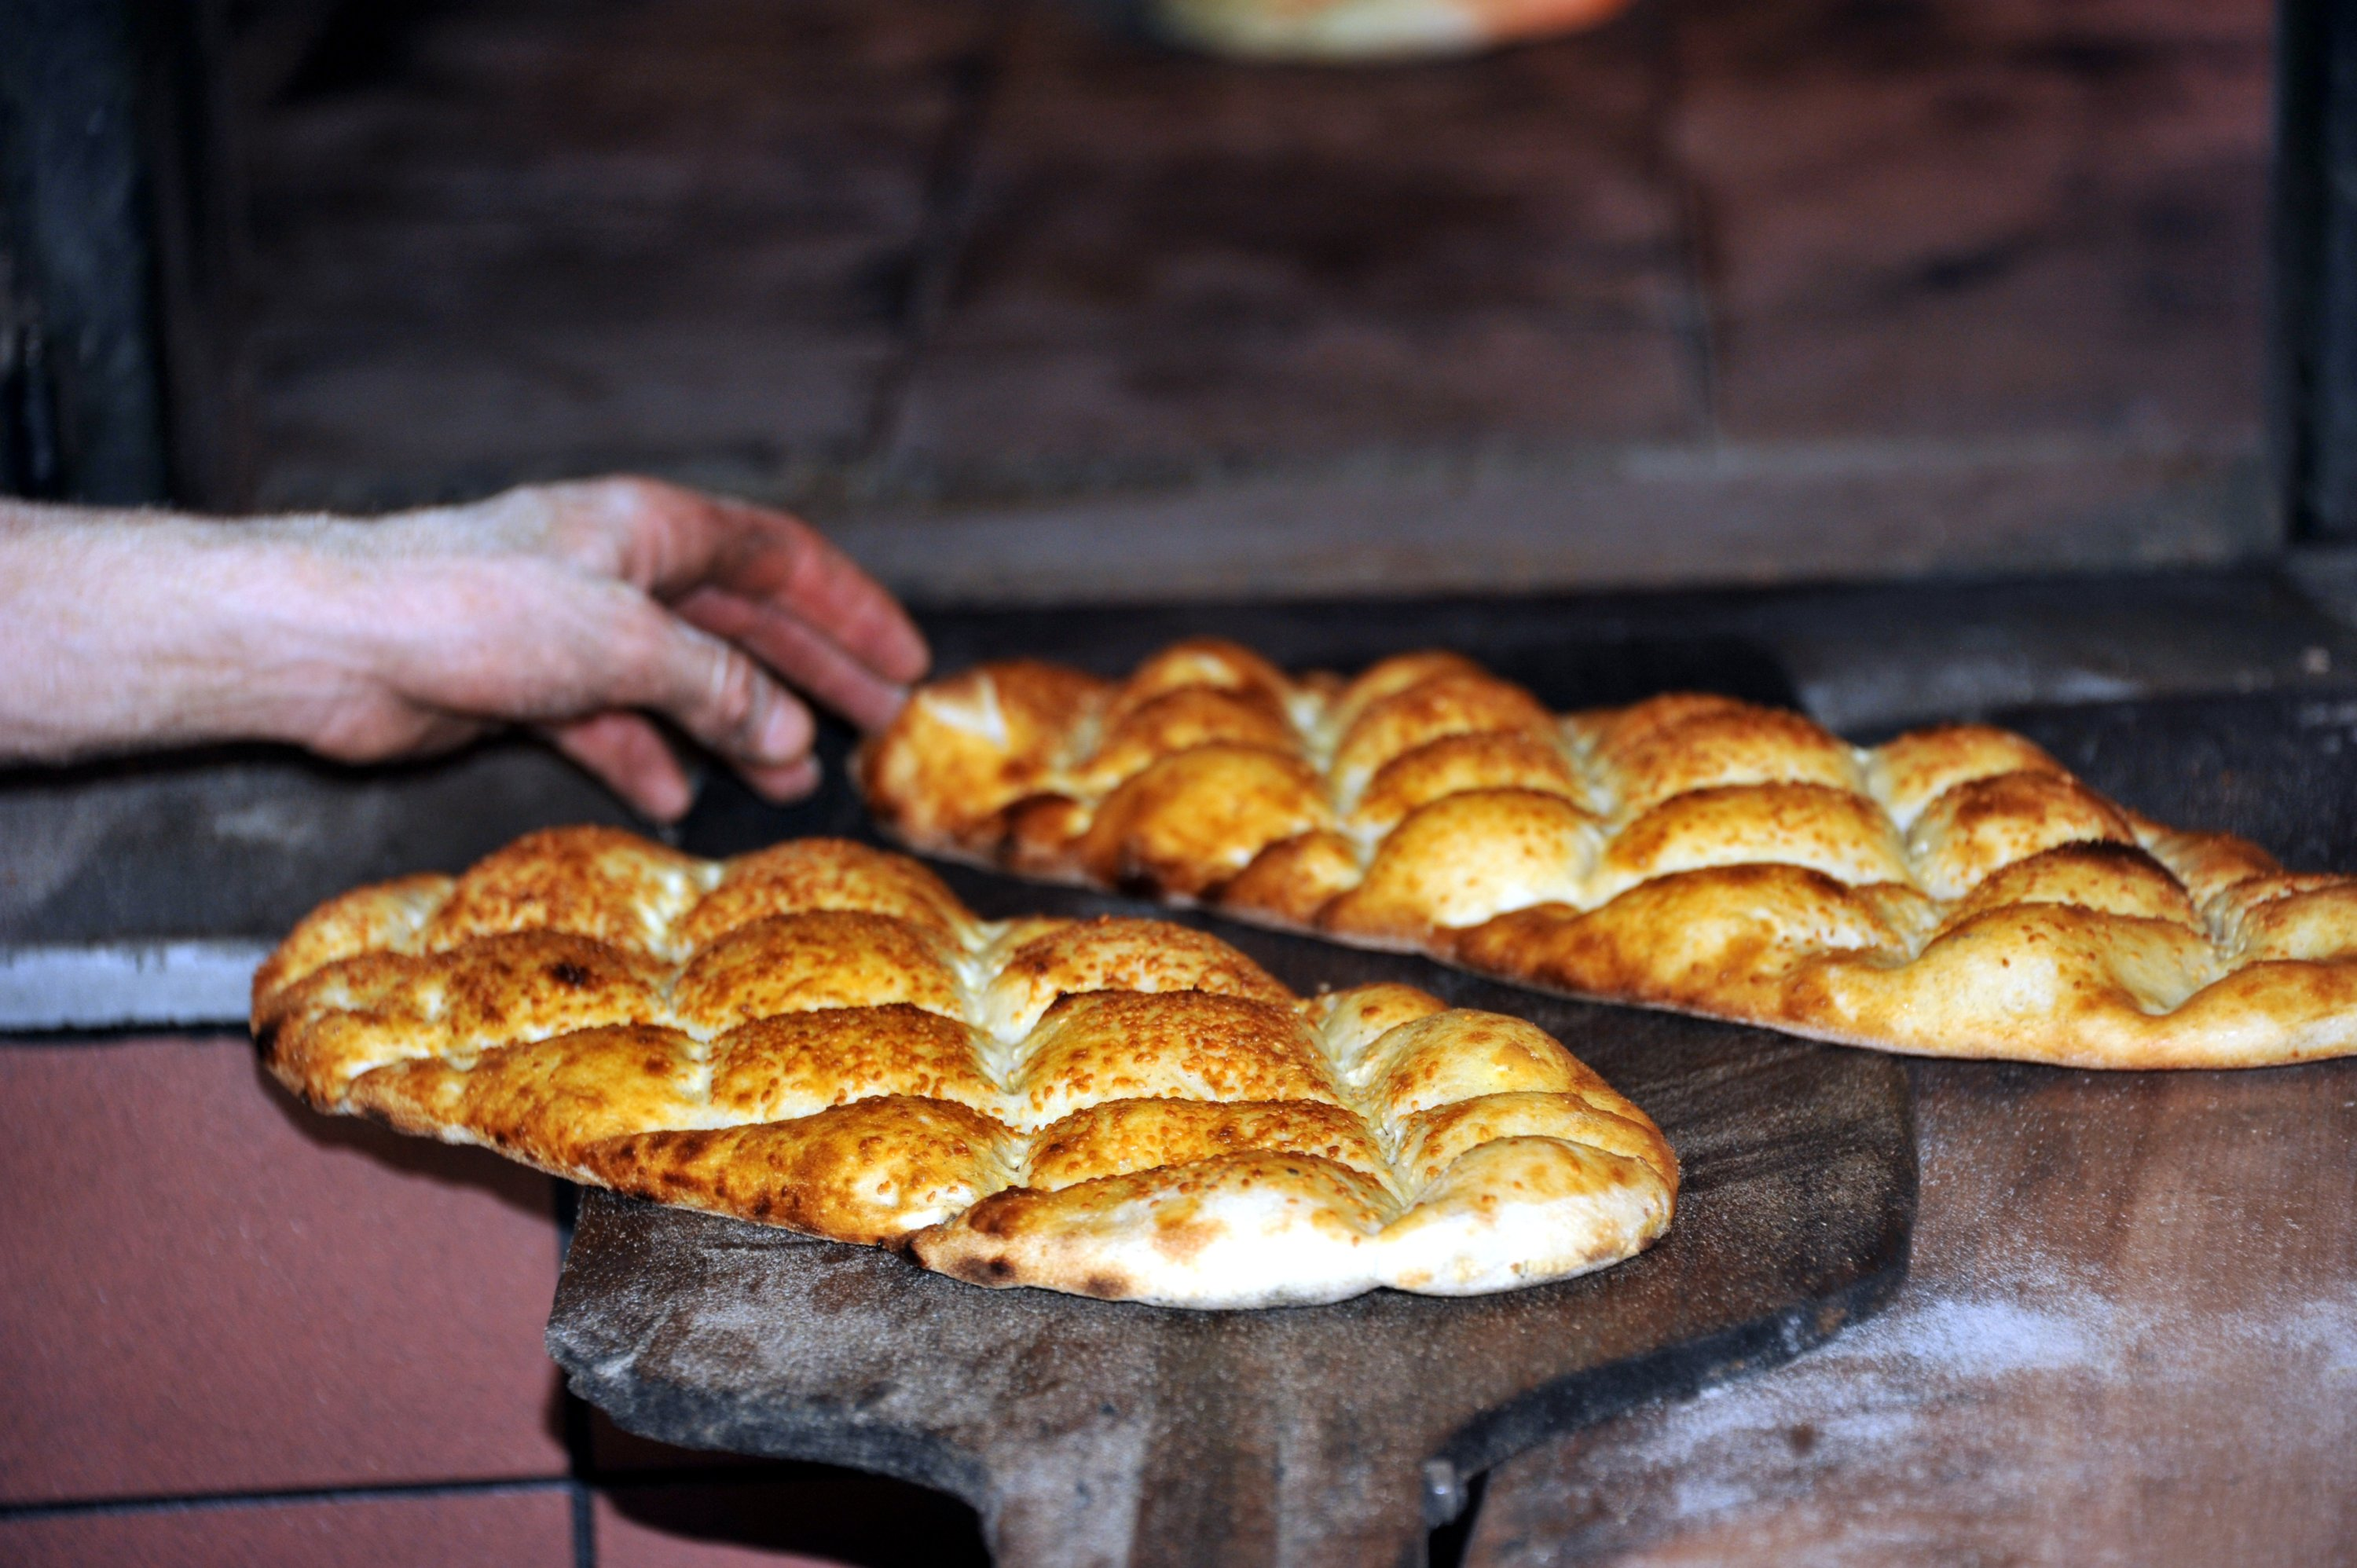 A bread baker takes two special round baked flatbreadsreferred to as the Ramazan pide, made from an oven-baked enriched dough and sprinkled with nigella and sesame seeds on top,out of the oven,Tokat, Turkey, April 13, 2021. (AA Photo)